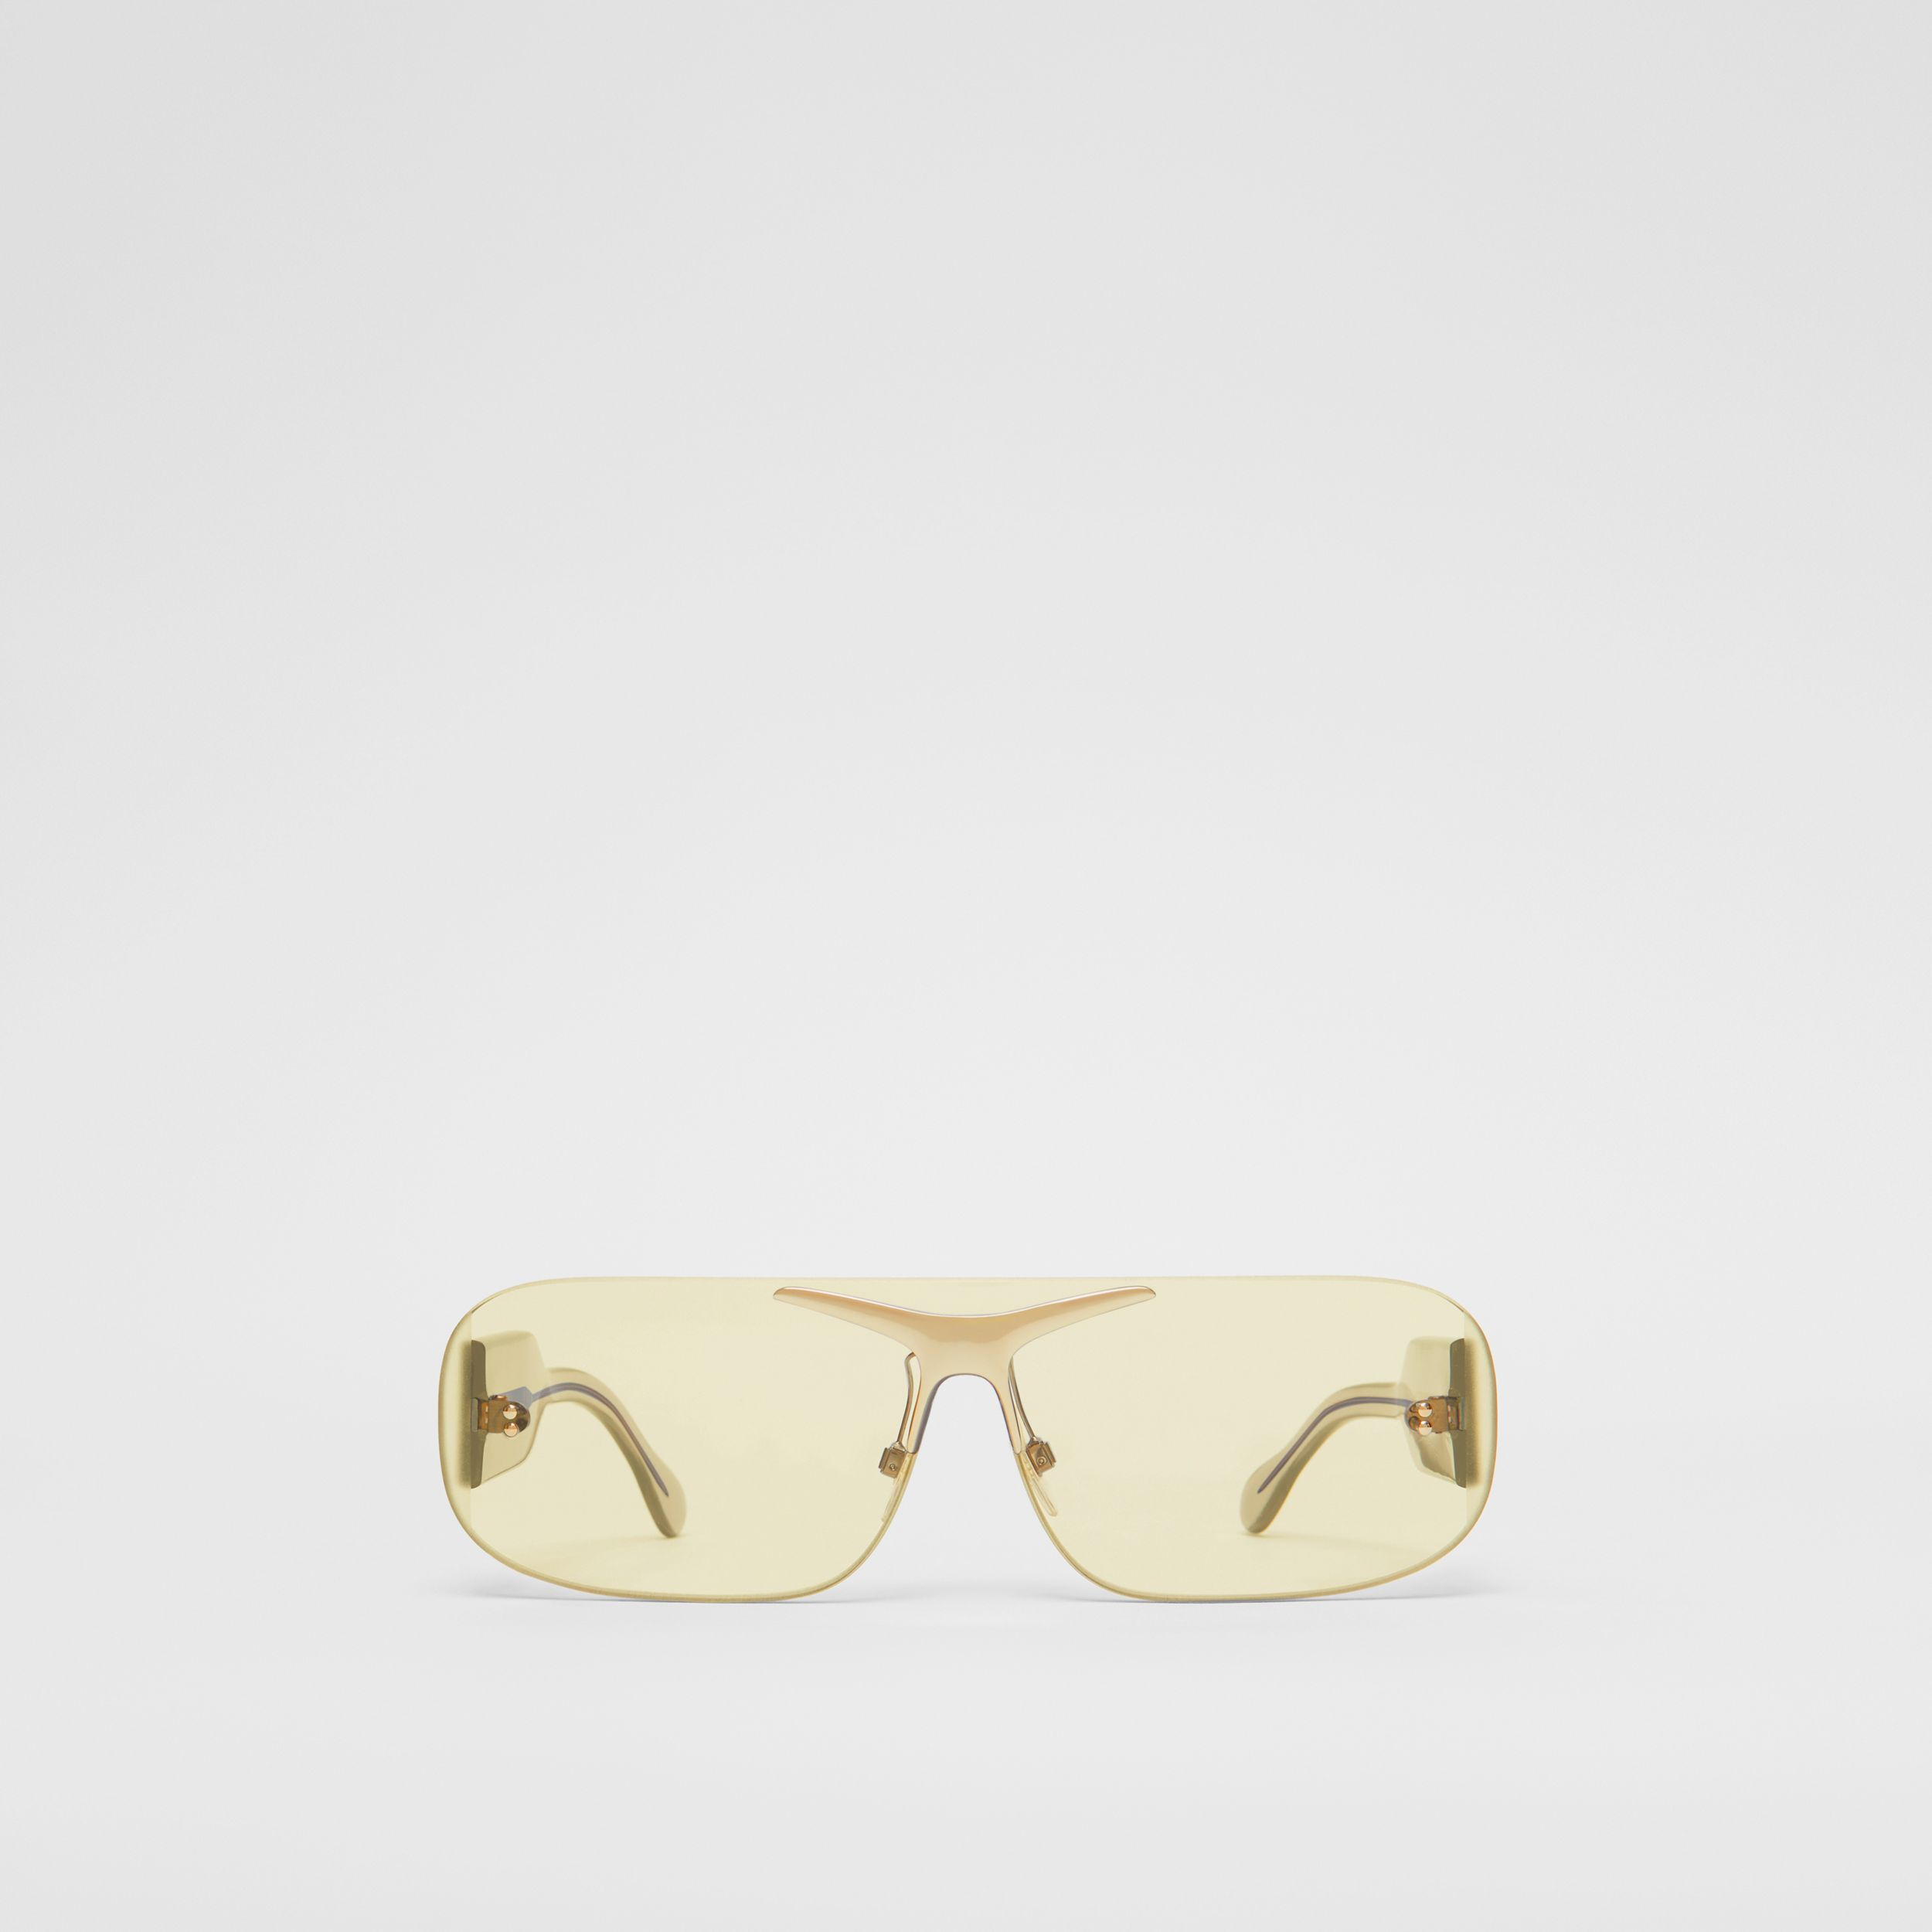 Blake Shield Sunglasses in Nude Gold | Burberry - 1